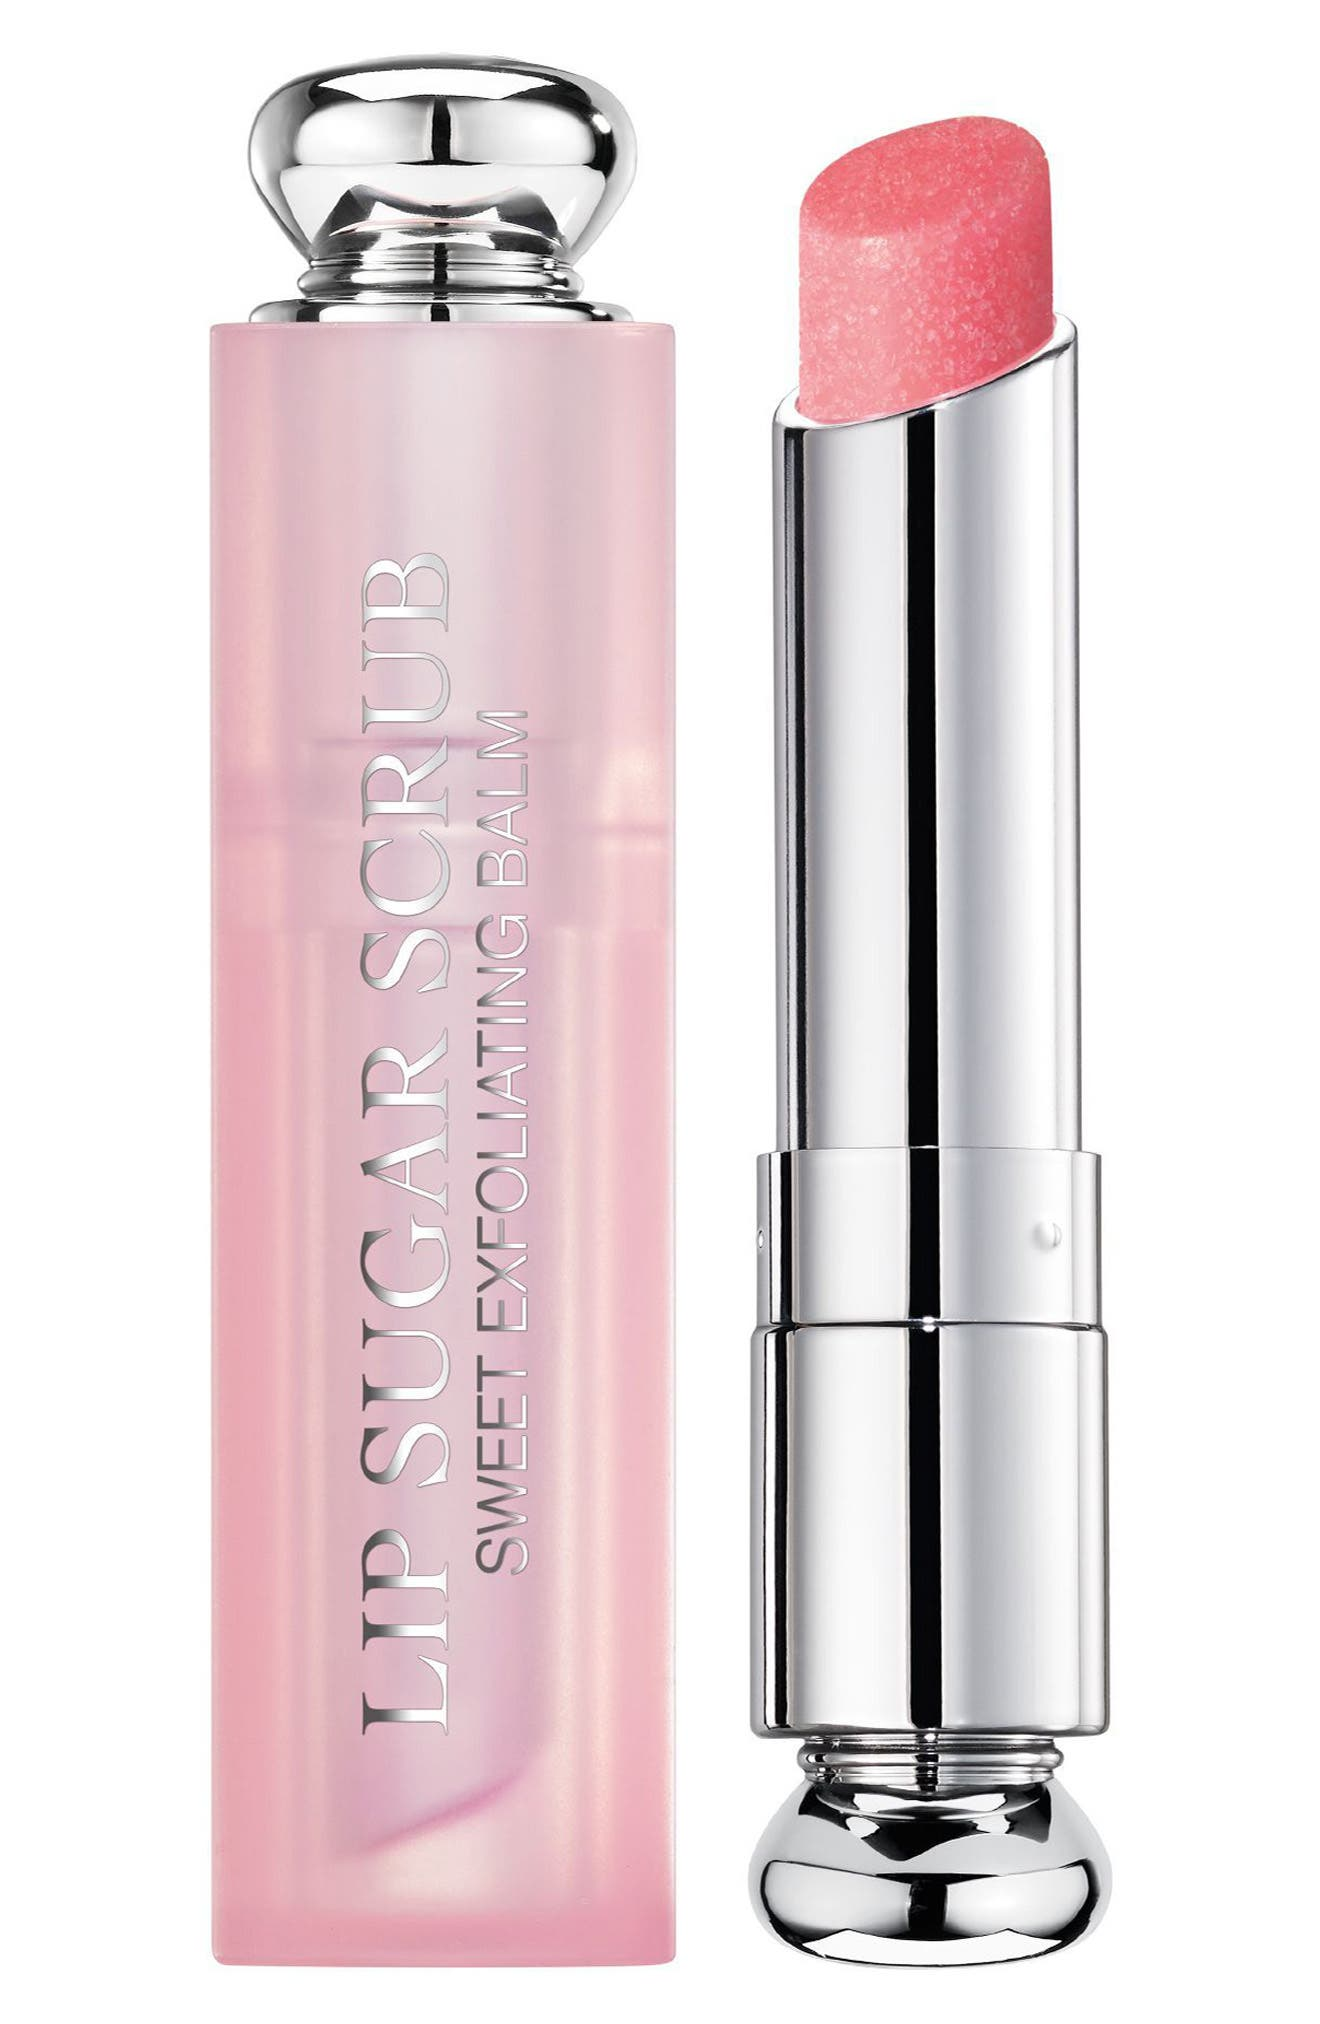 Dior Lip Sugar Scrub Sweet Exfoliating Balm